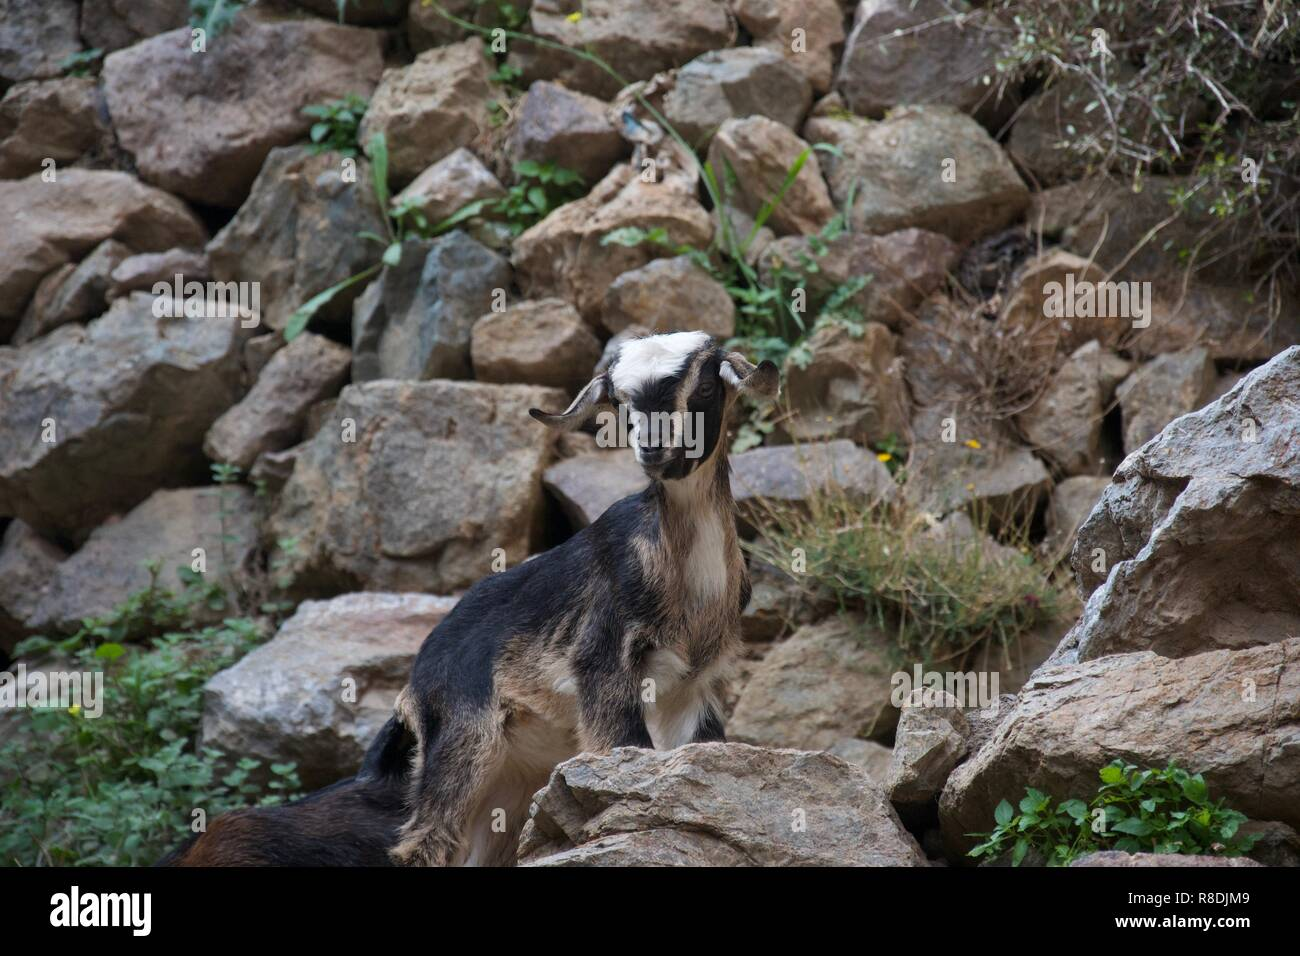 A small black, brown and cream goat stands on a rocky path, pauses and looks towards the camera - Stock Image